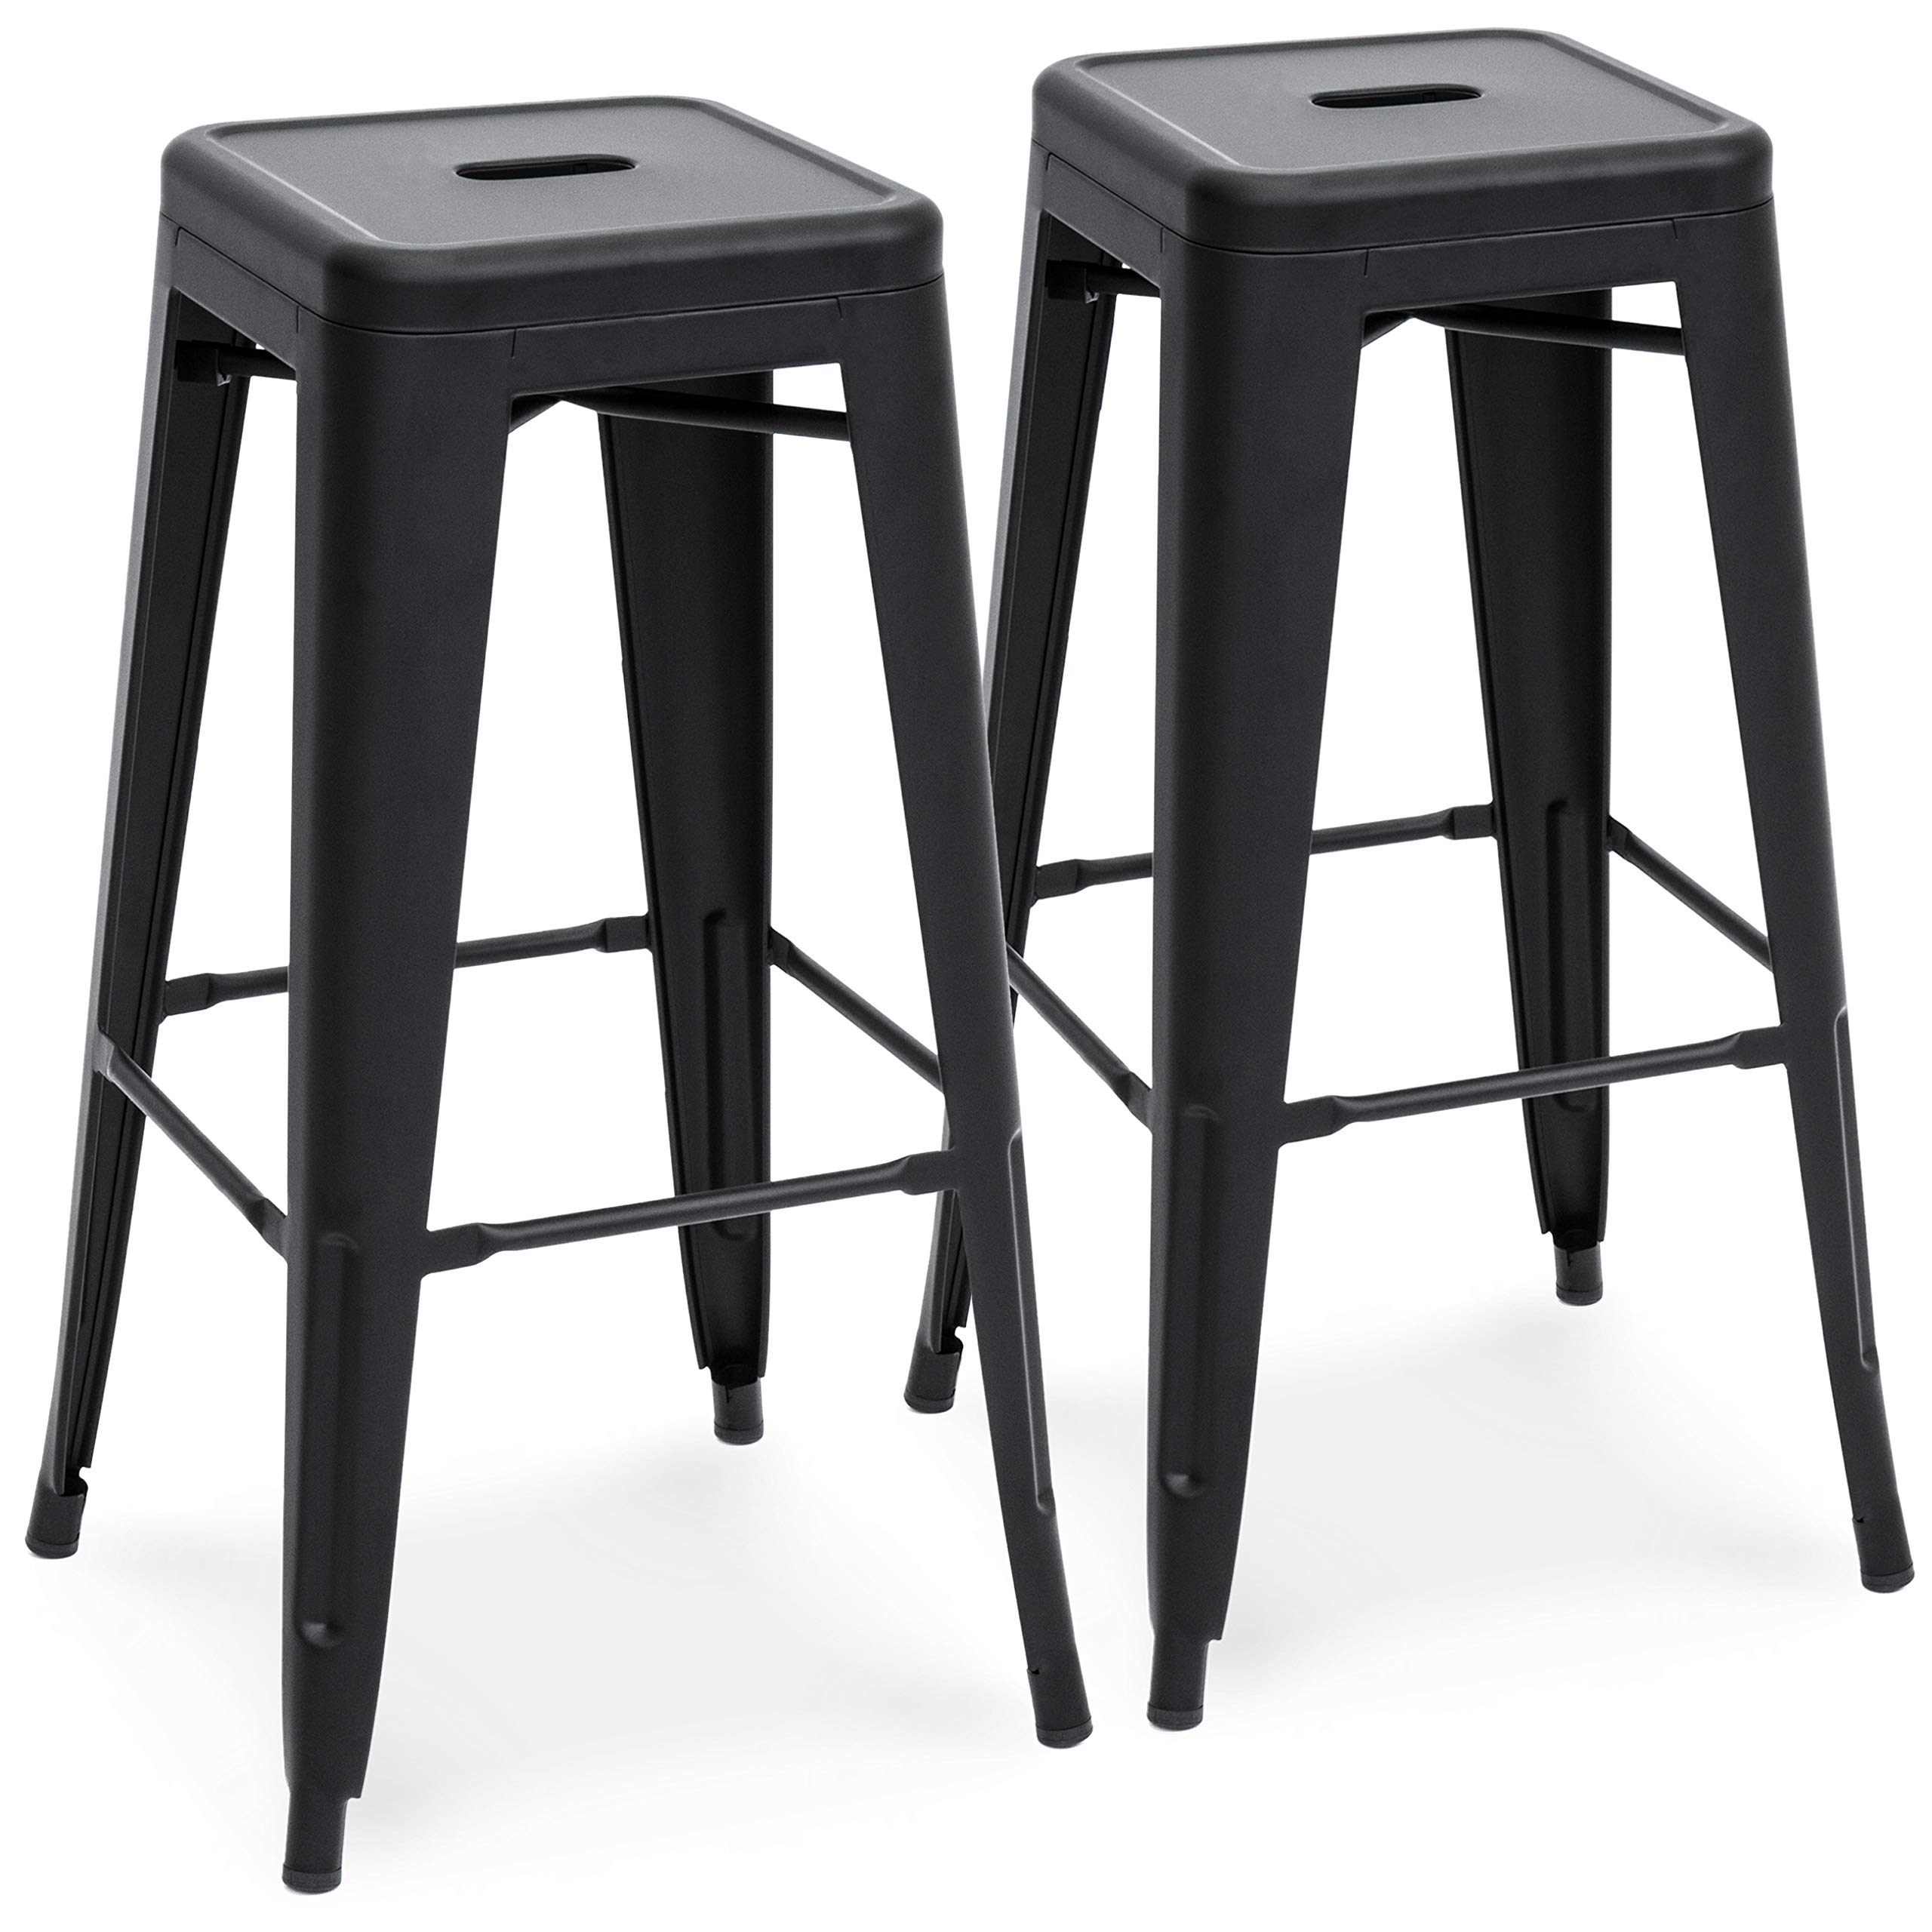 Best Choice Products 30in Set of 2 Modern Industrial Backless Metal Counter Height Bar Stools - Matte Black by Best Choice Products